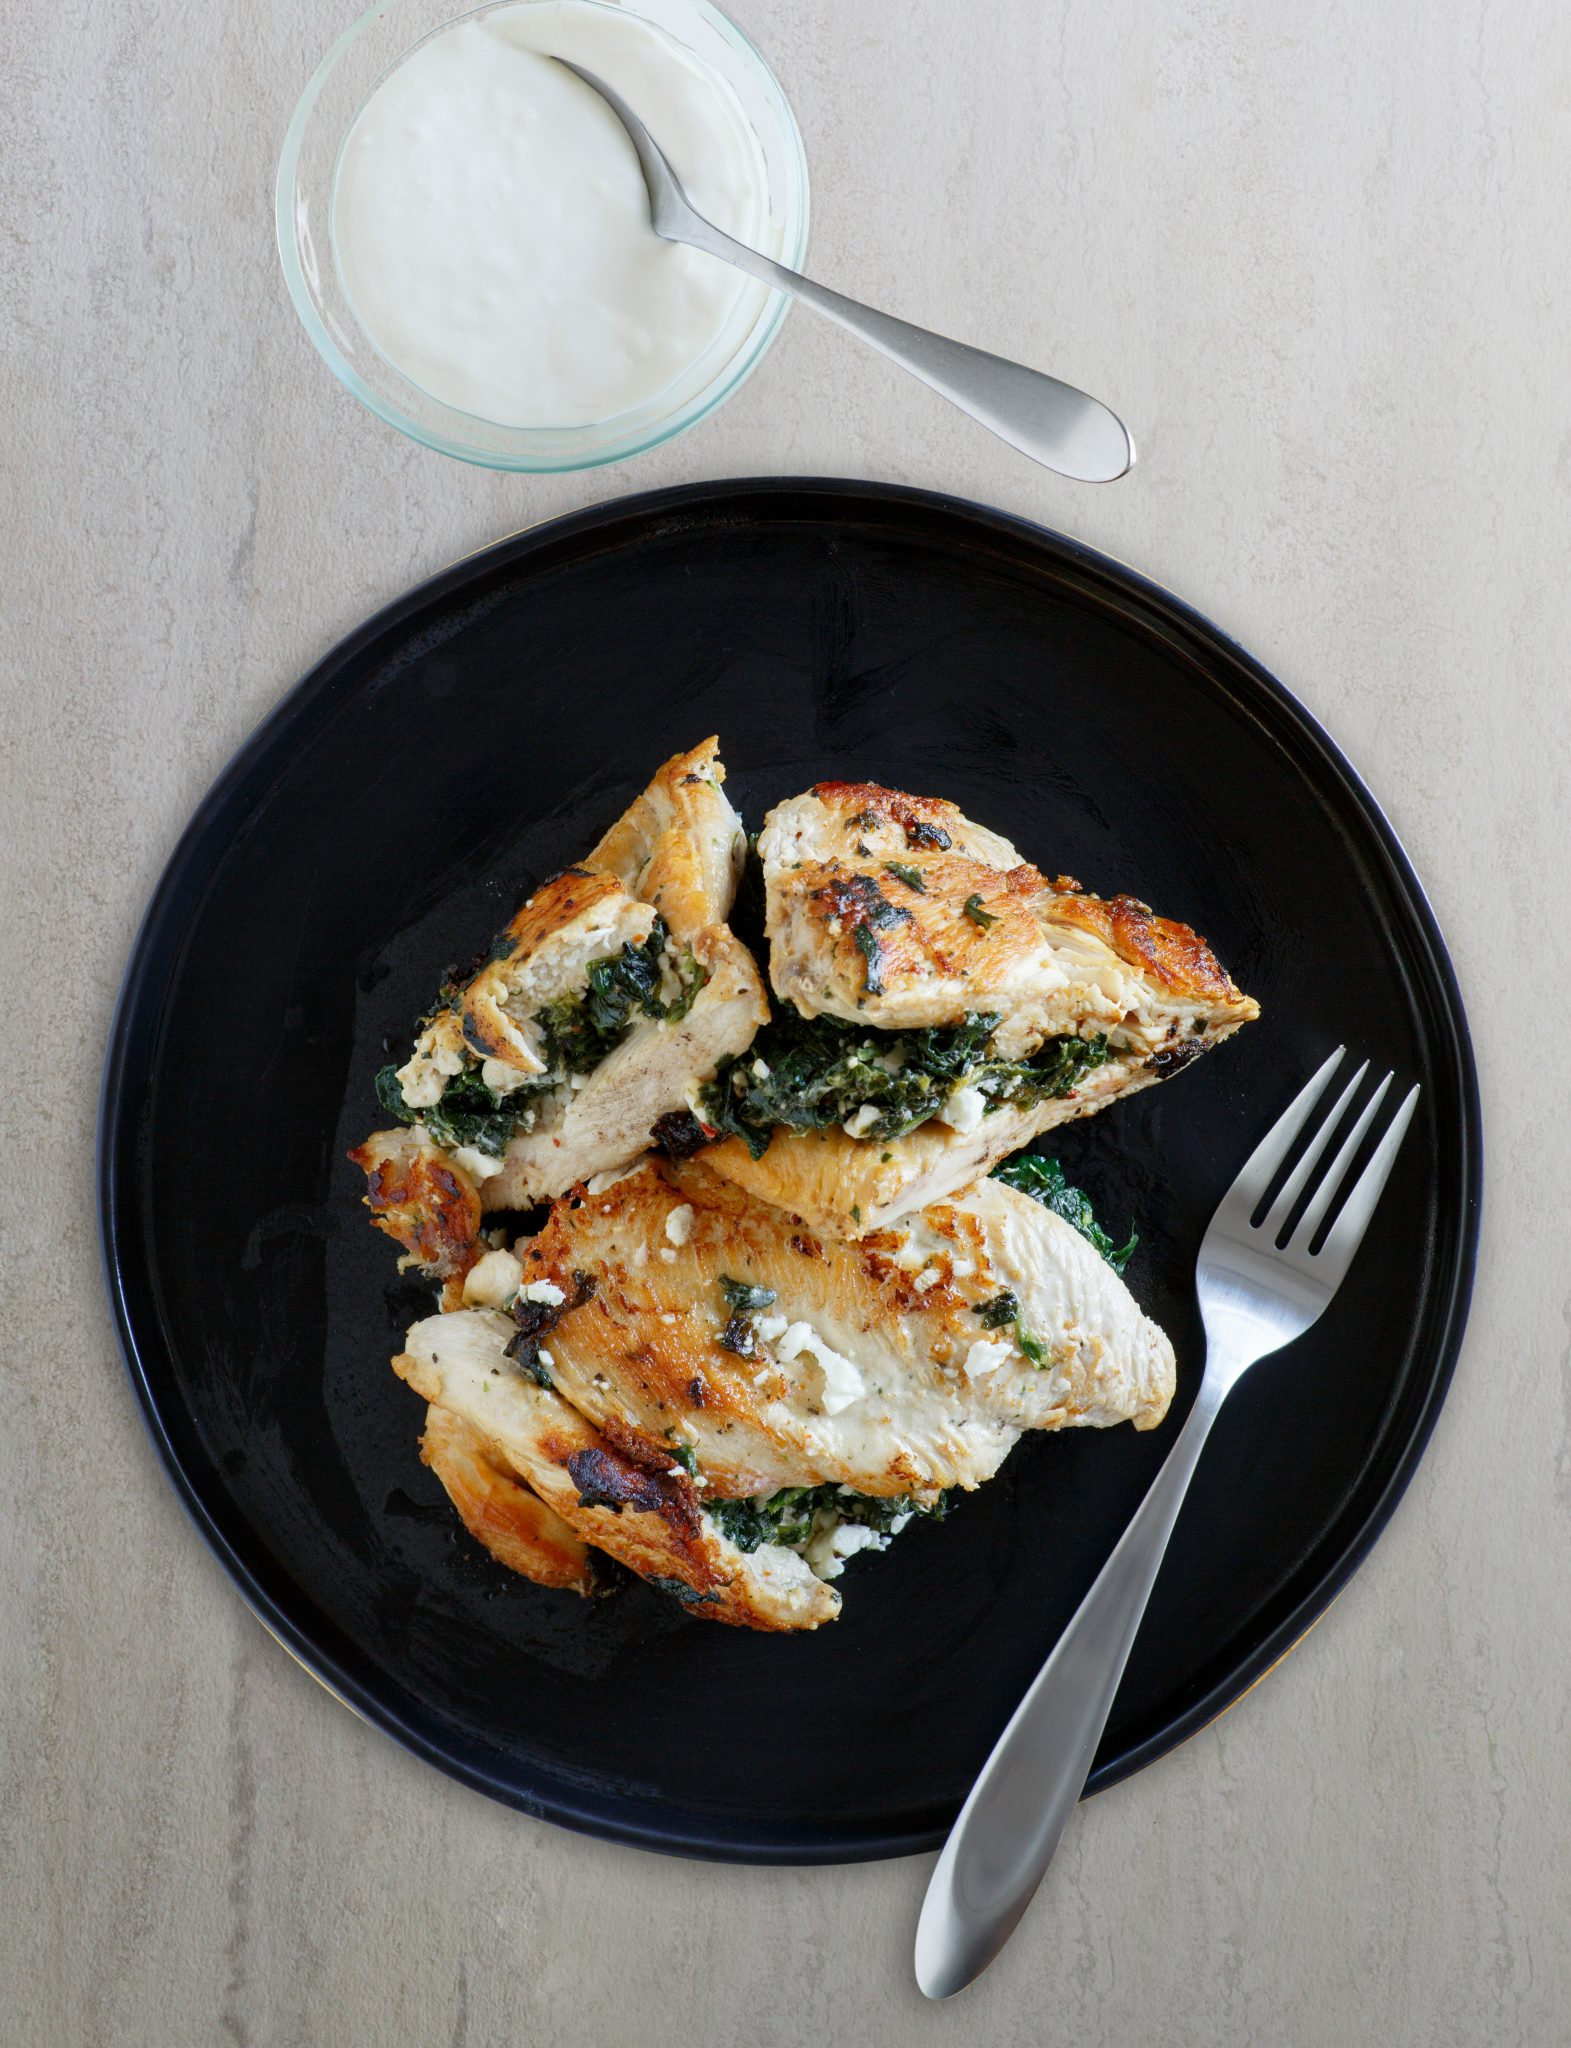 Spinach And Feta Stuffed Chicken Instant Pot Recipes